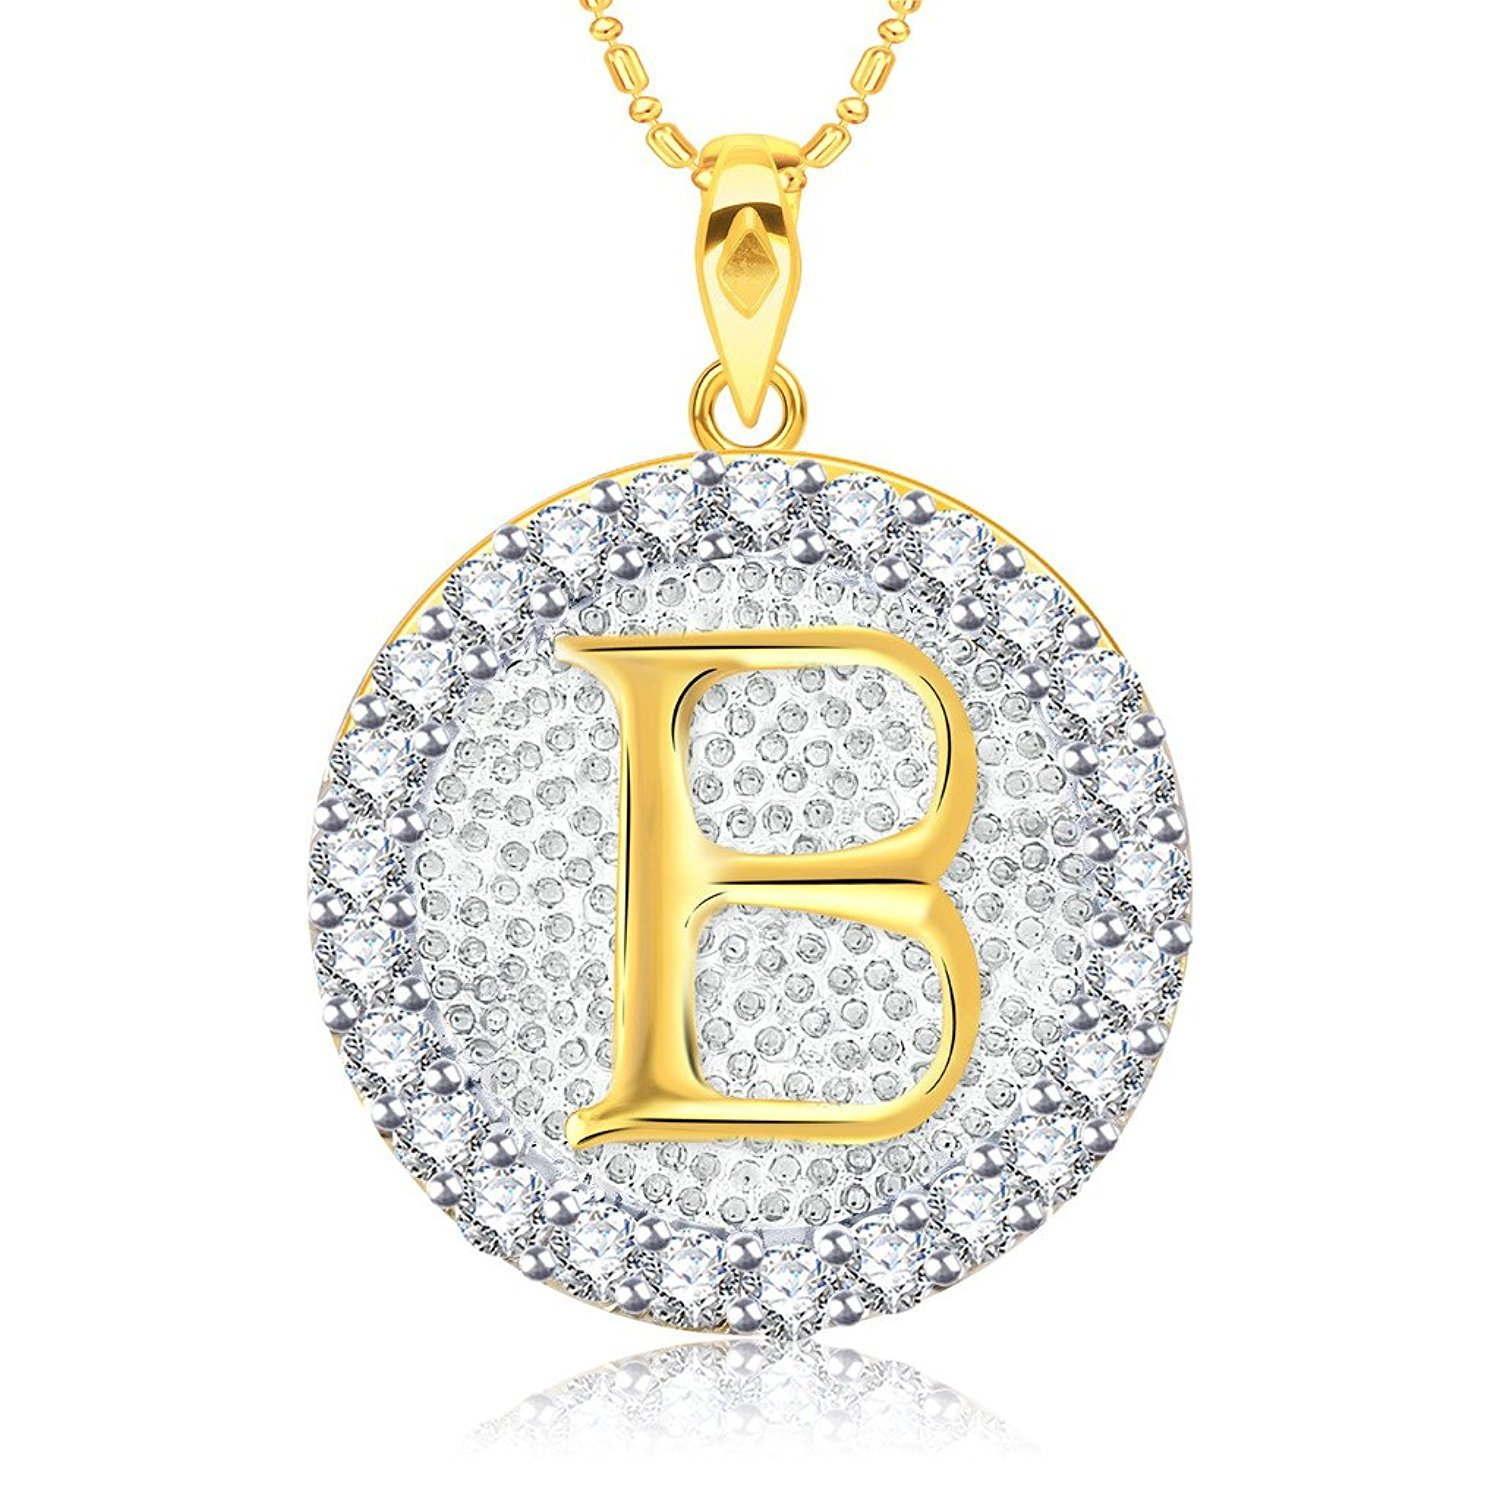 Suhana Jewellery Simulated Diamond Studded Fashion Love Promise Heart Pendant Necklace in 14K White Gold Plated With Box Chain